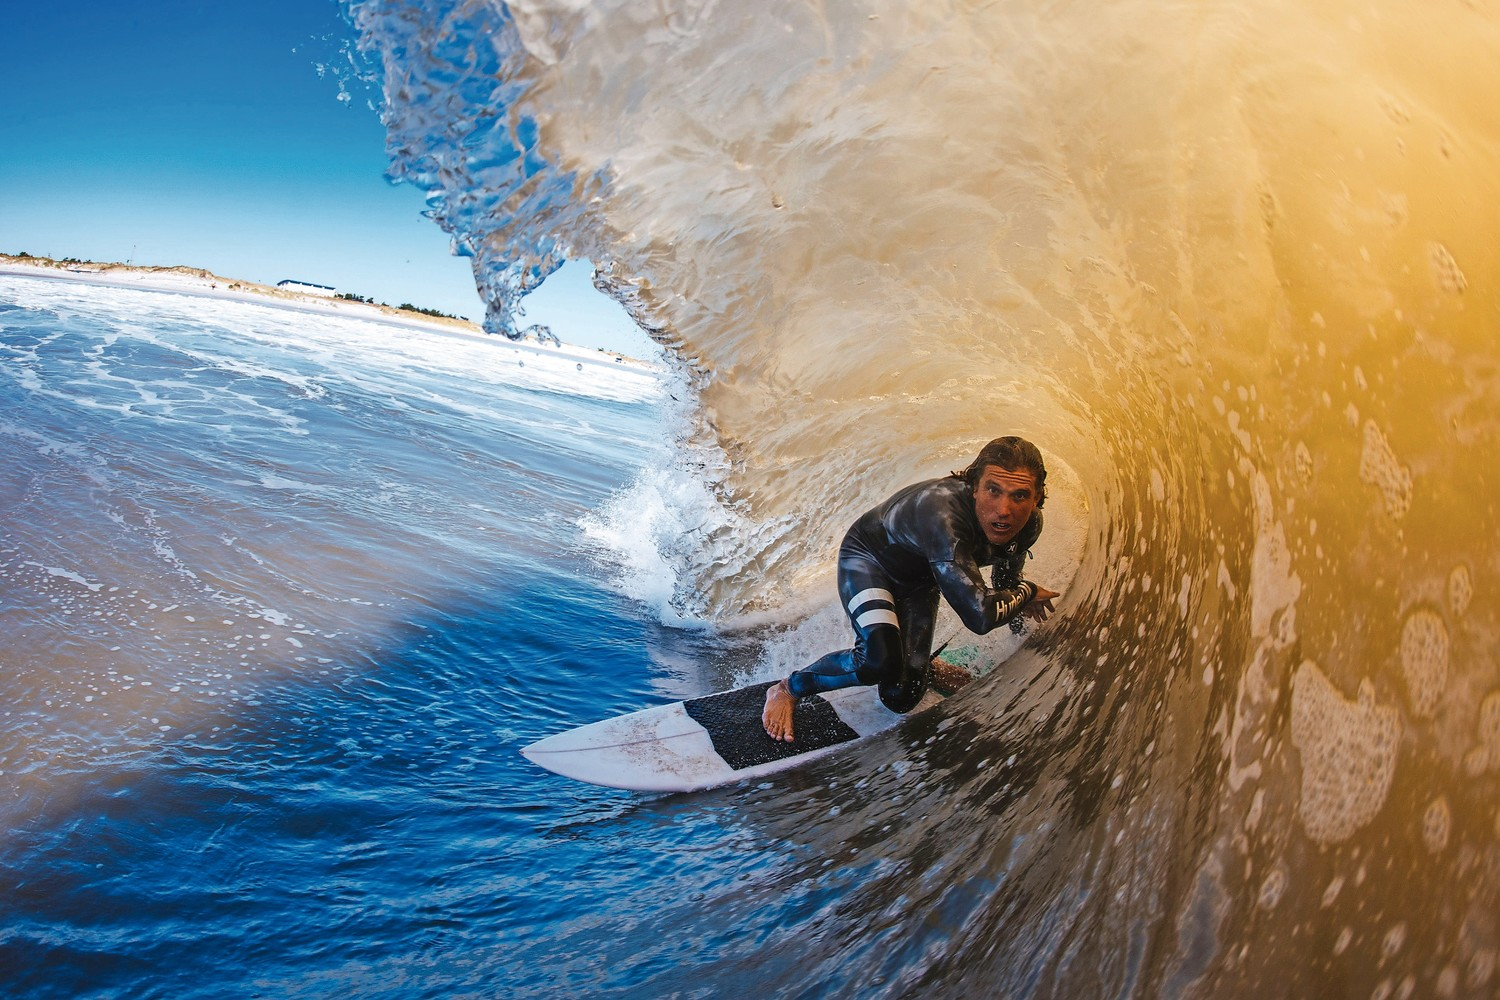 Long Beach resident and pro surfer TJ Gumiela rode a barrel in Long Beach last month, where waves with six- to eight-foot faces kept rolling in.